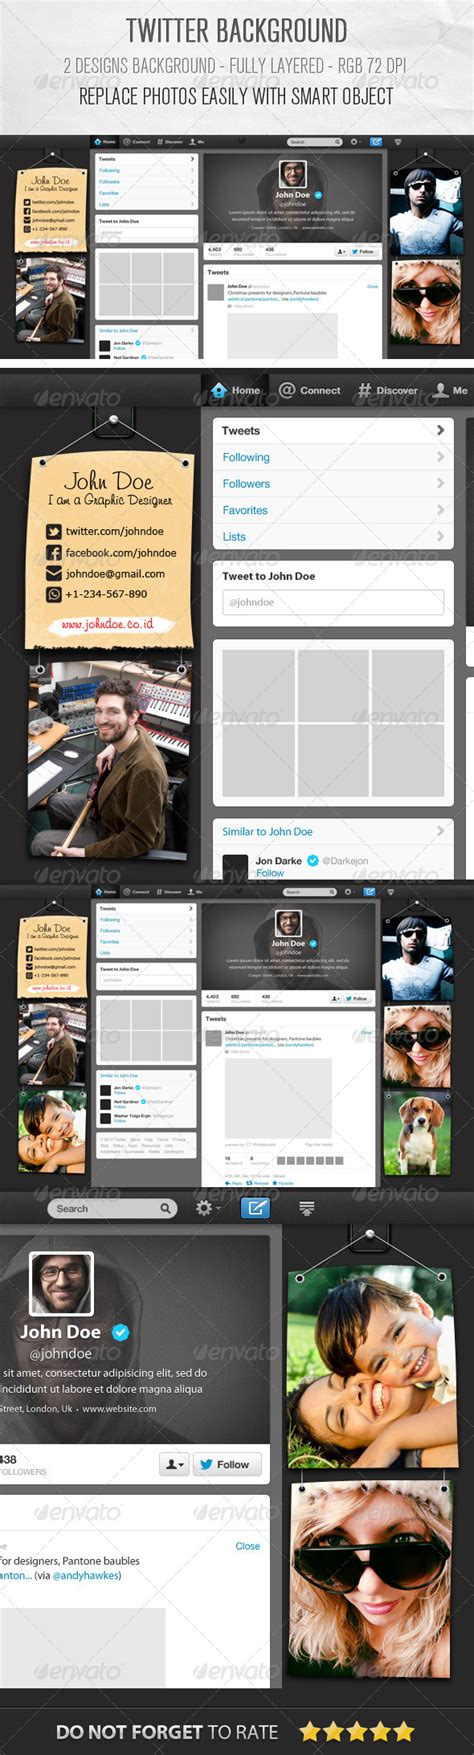 twitter layout preview very simple ganesh designs com 187 tinkytyler org stock